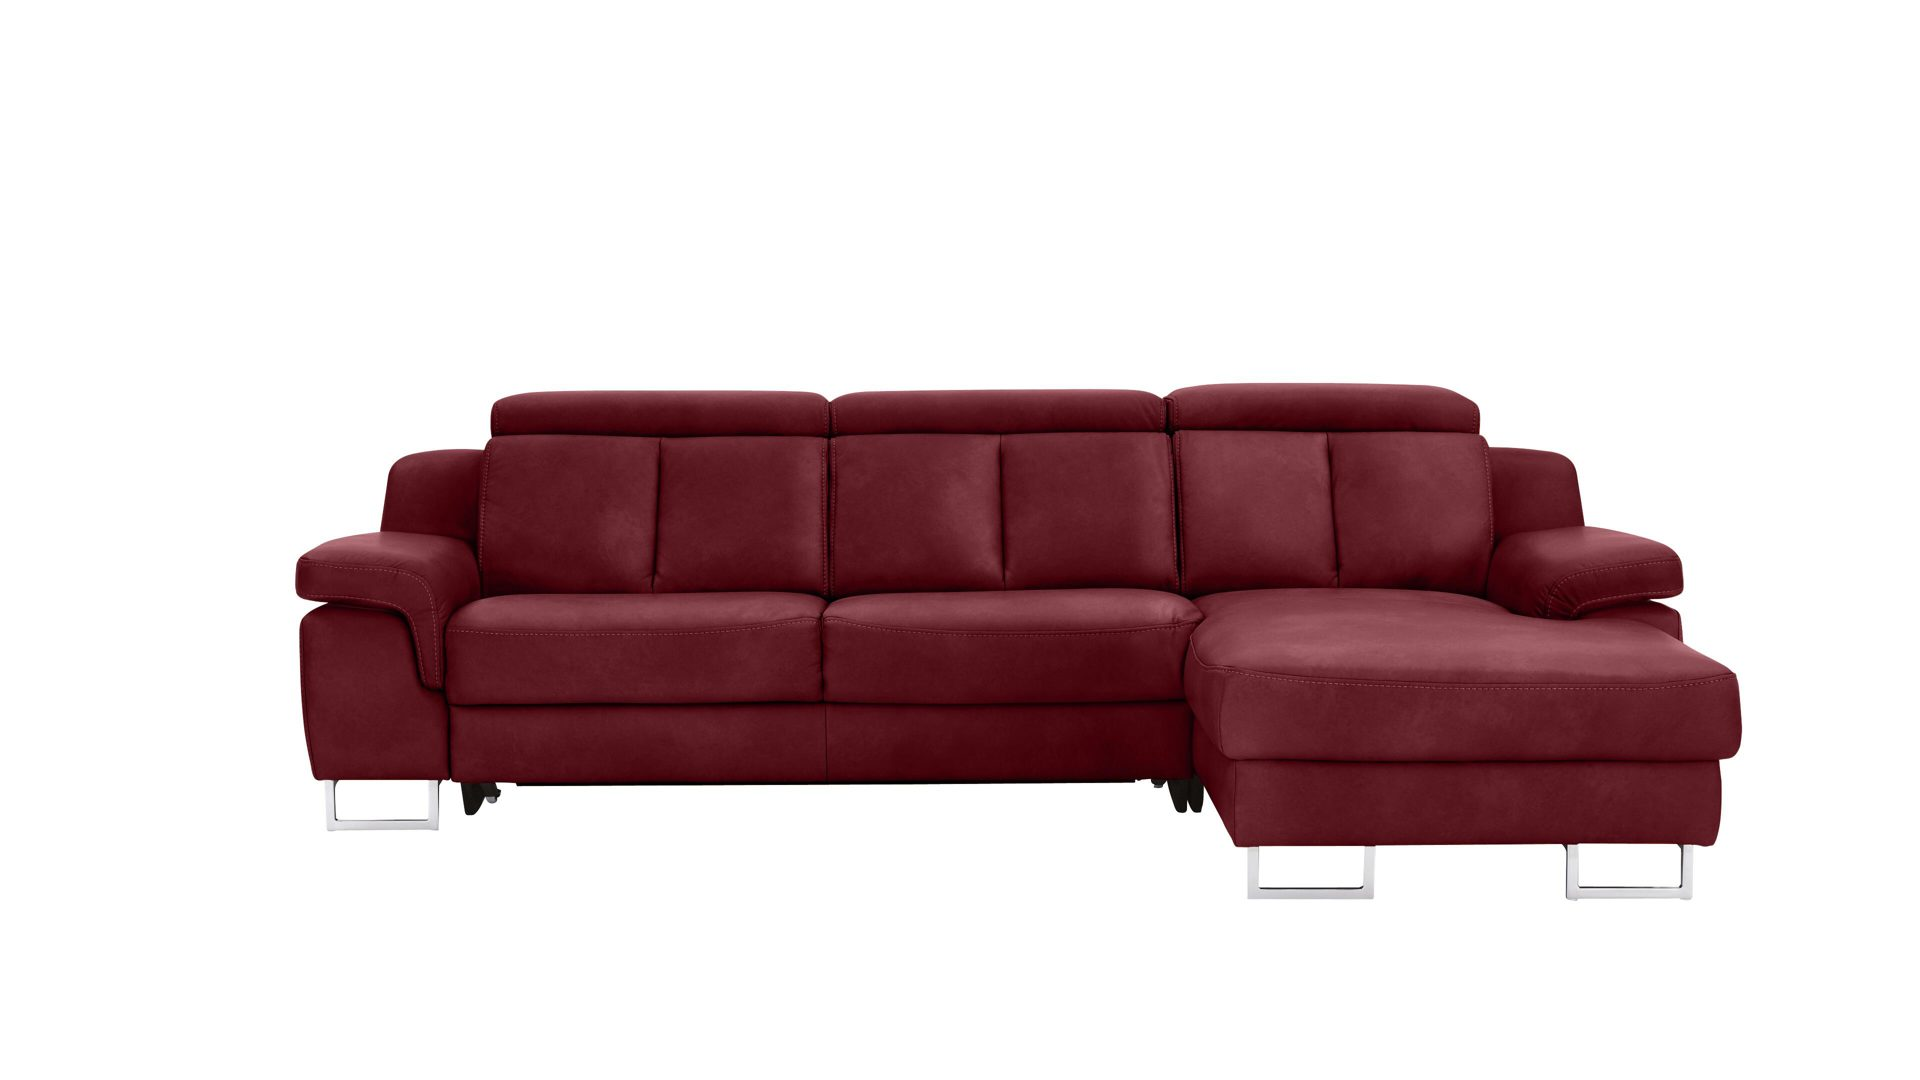 Ecksofa Trends Interliving Sofa Serie 4050 Eckkombination Rotes Longlife Leder